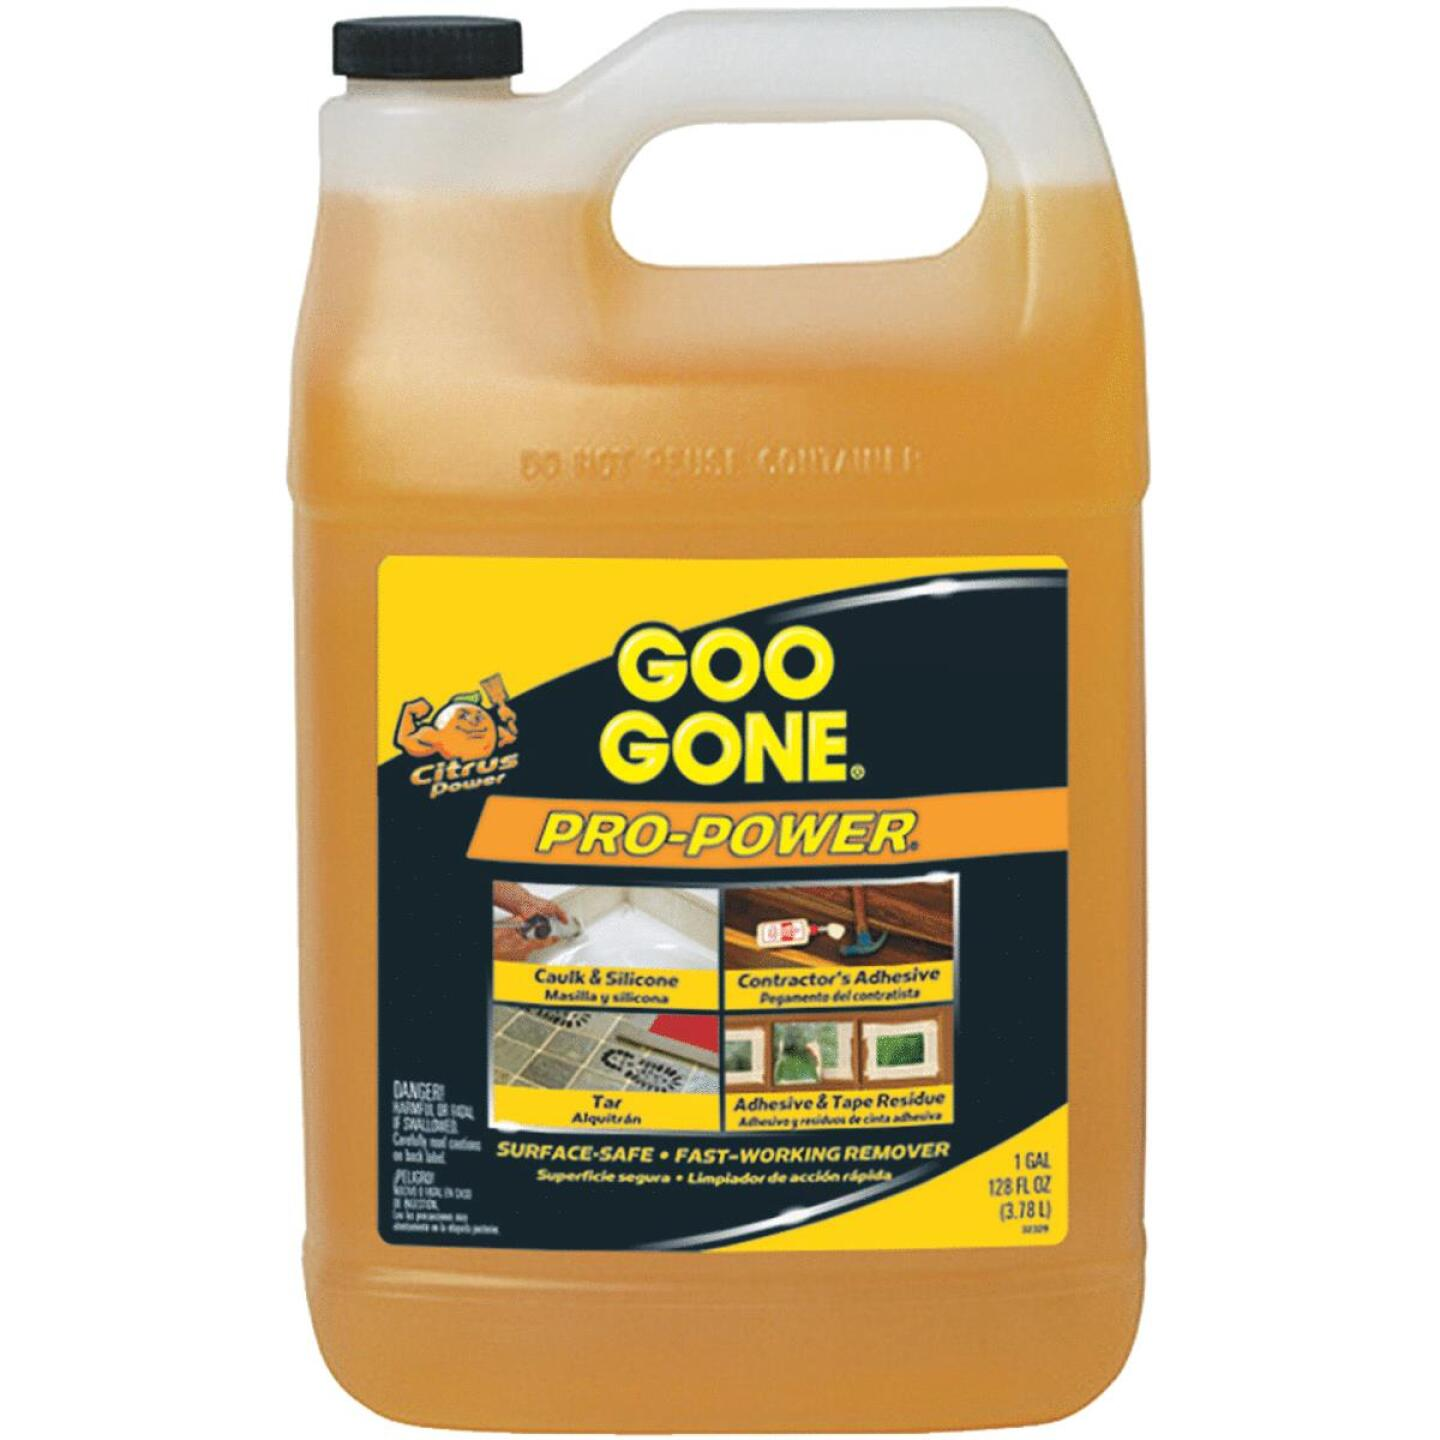 Goo Gone 1 Gal. Pro-Power Adhesive Remover Image 124